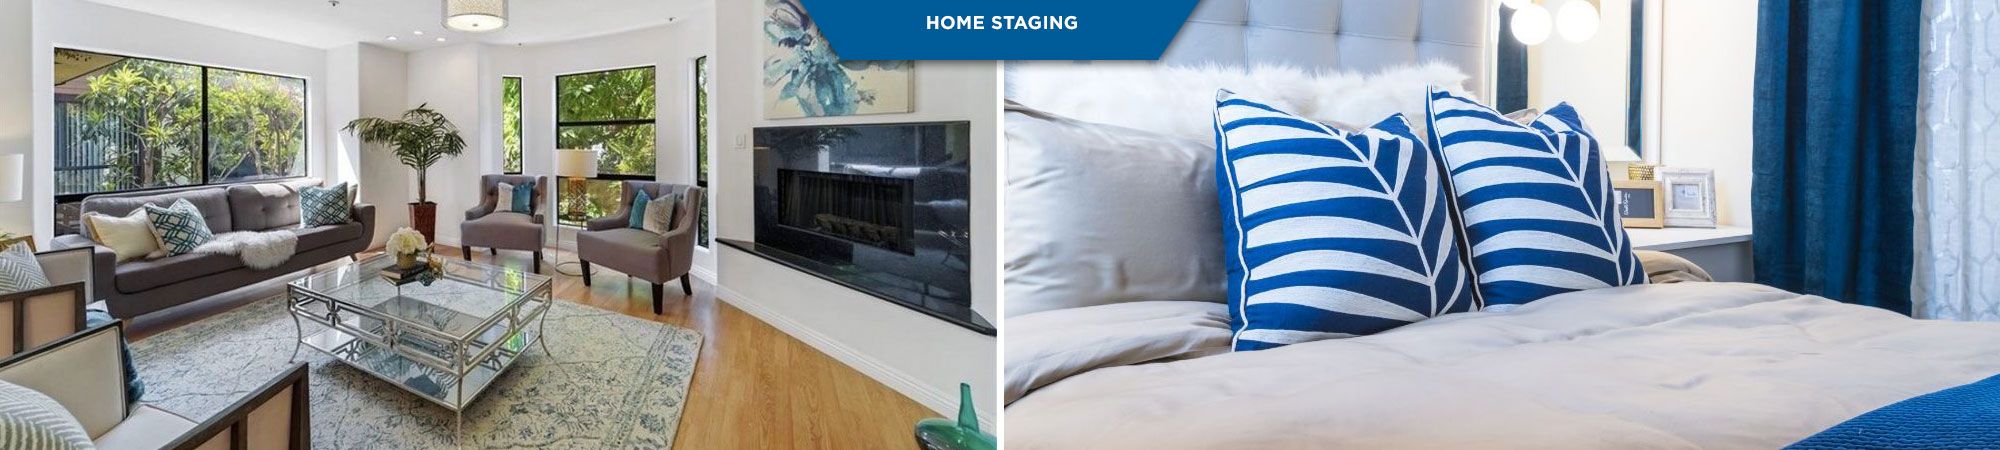 Interior design and staging